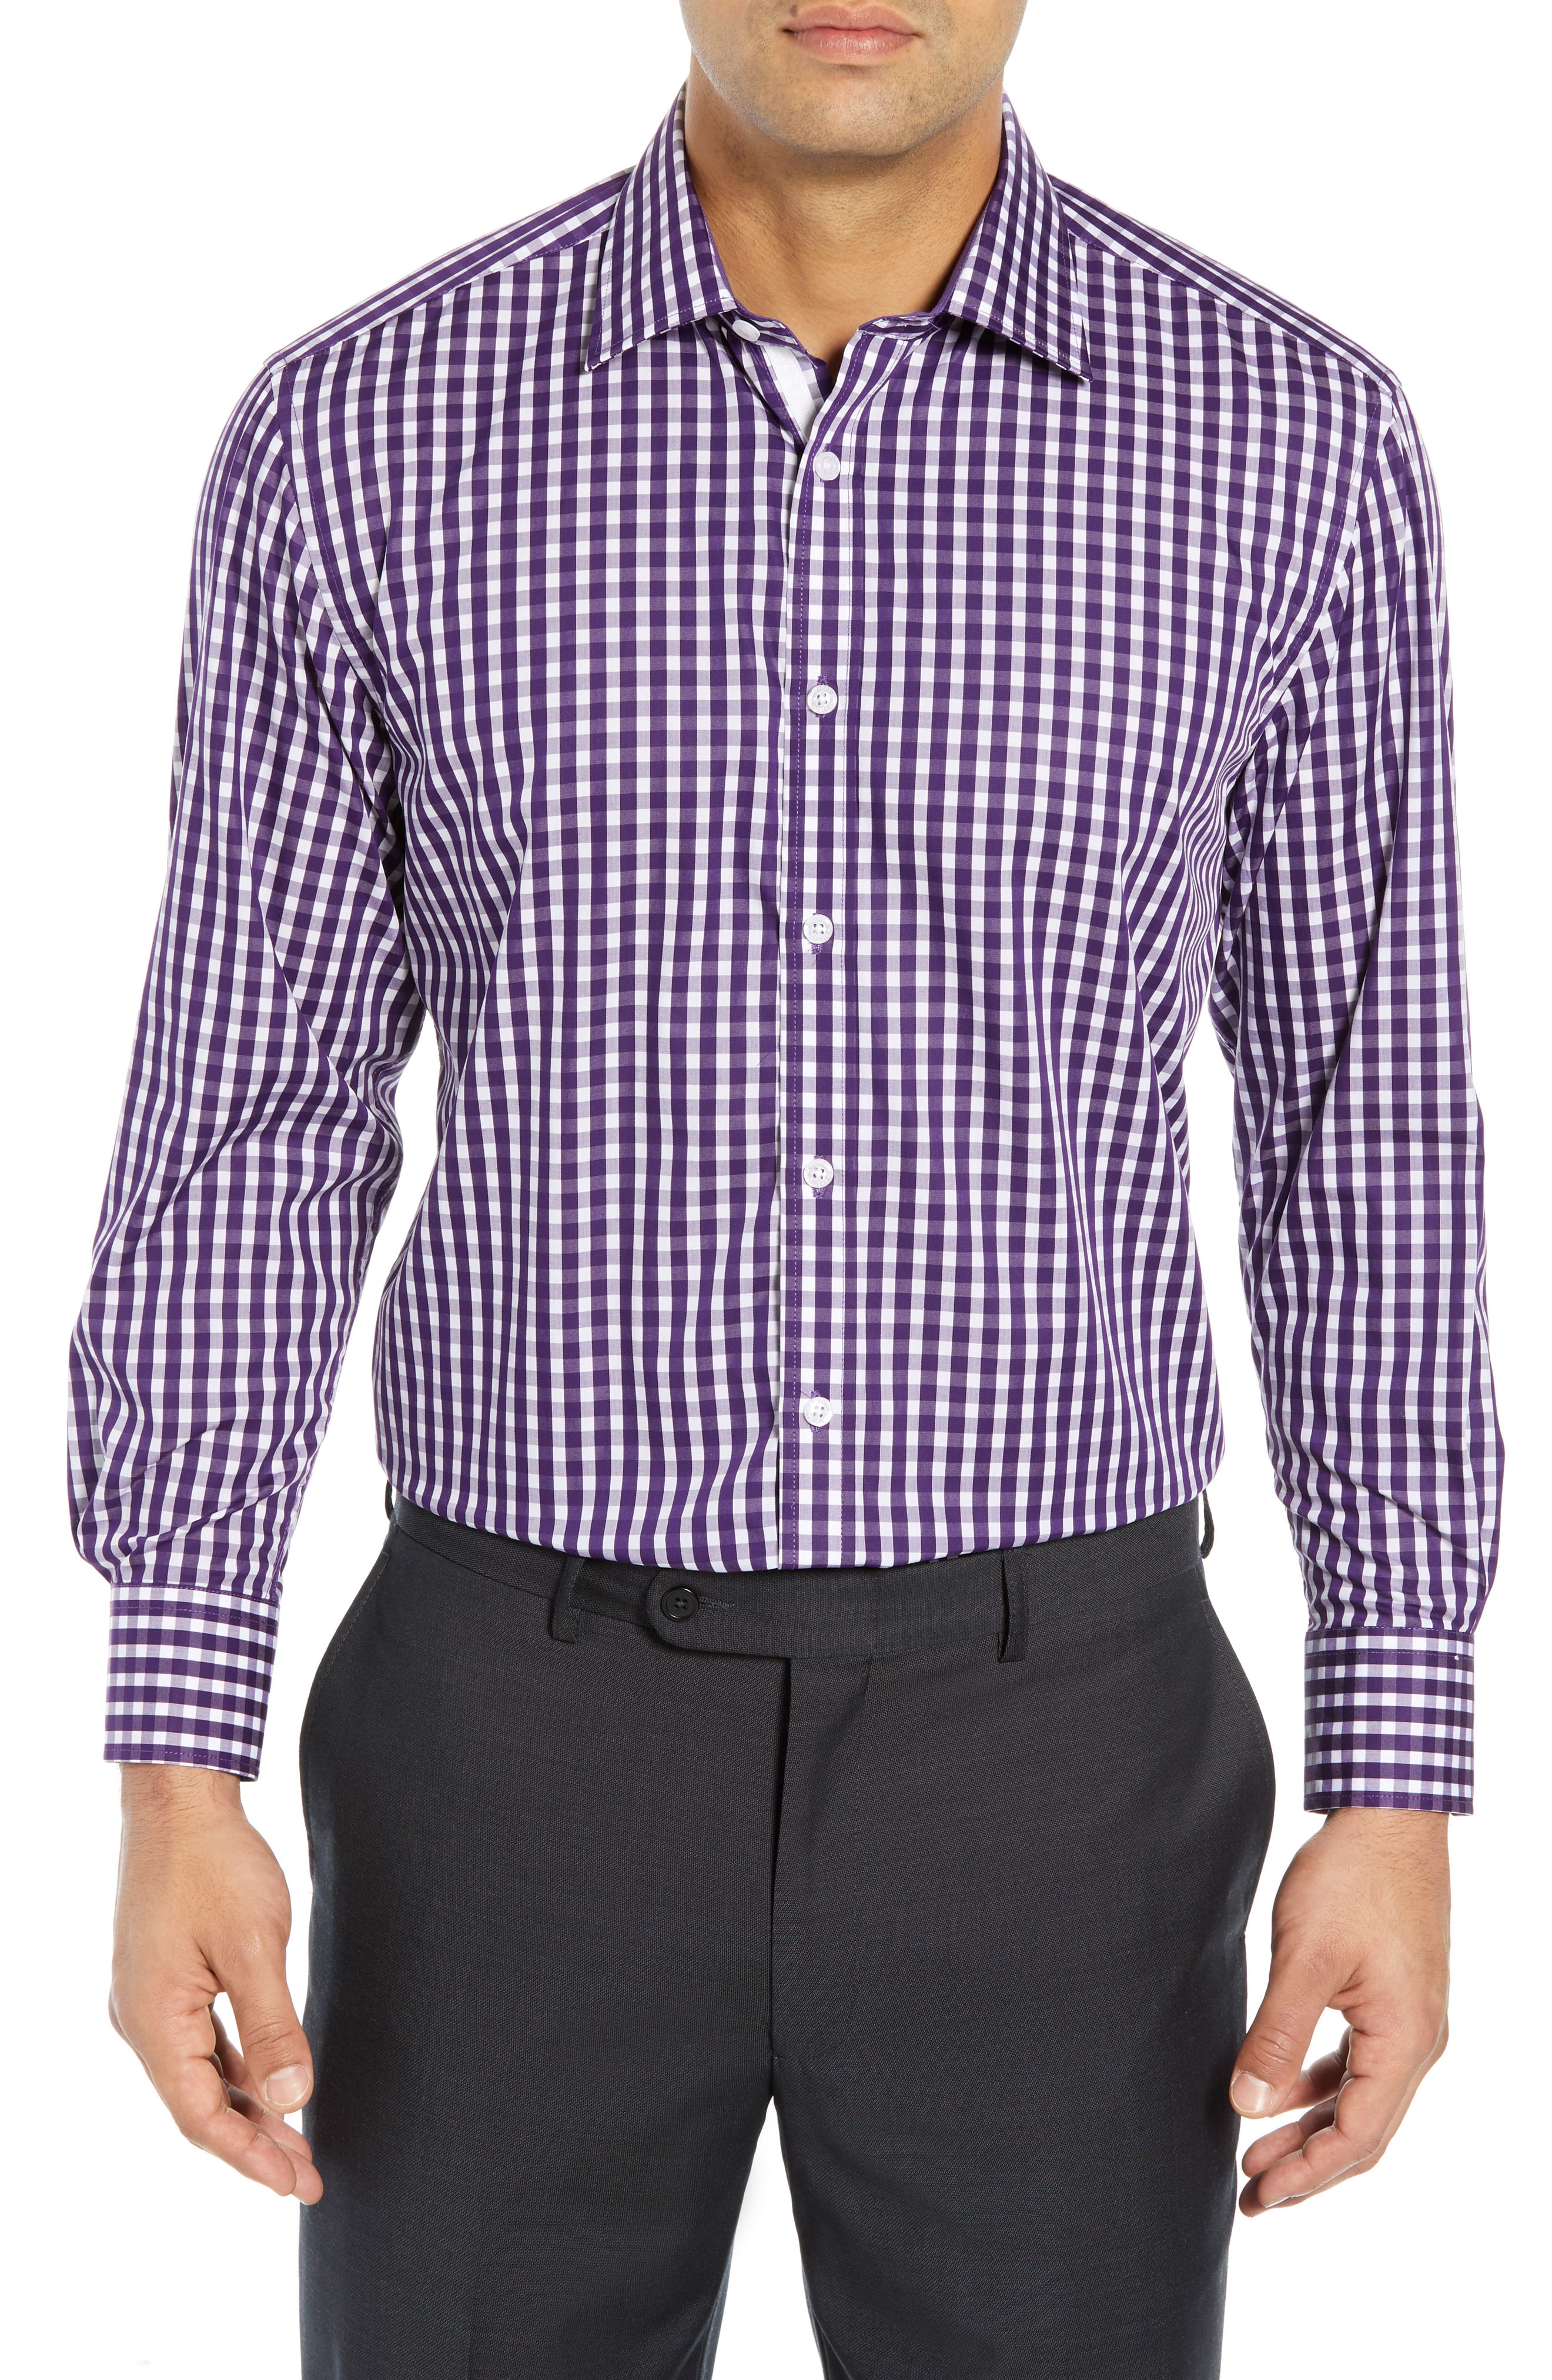 English Laundry Regular Fit Check Dress Shirt Shirt Dress